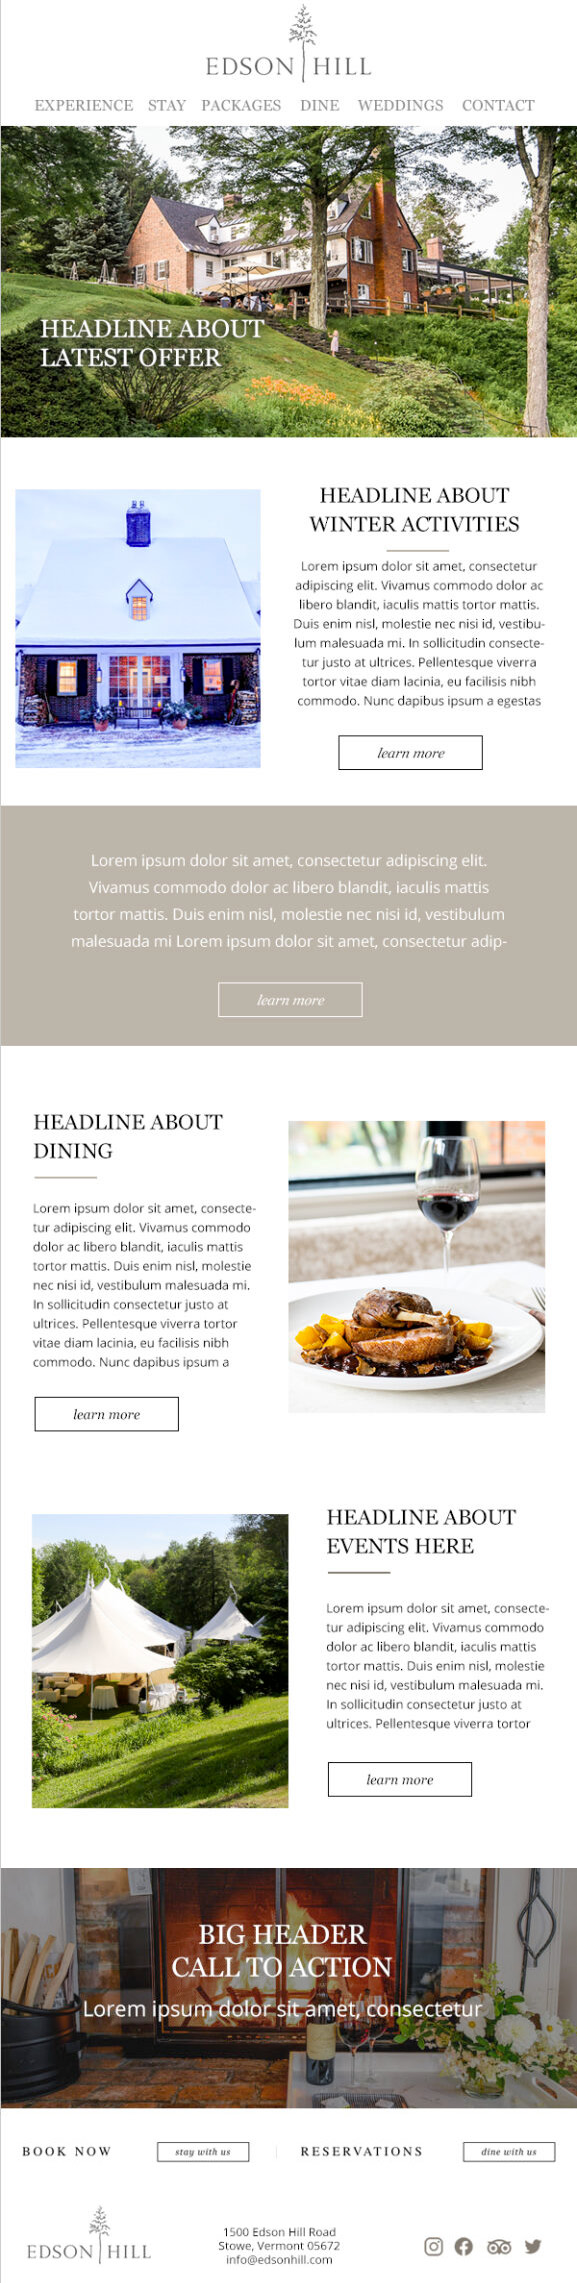 Edson Hill Email Template